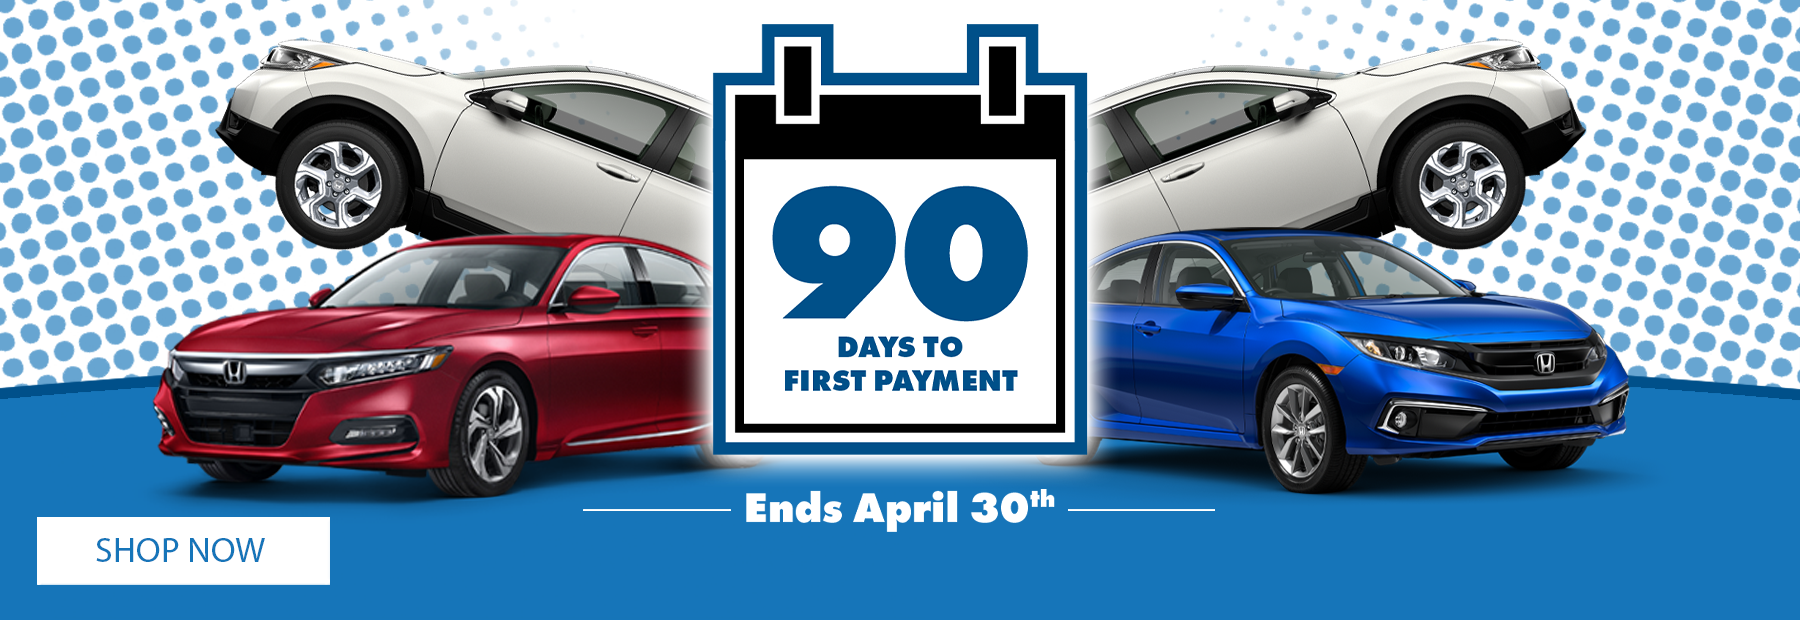 90-day-to-first-payment-performance-cincinnati